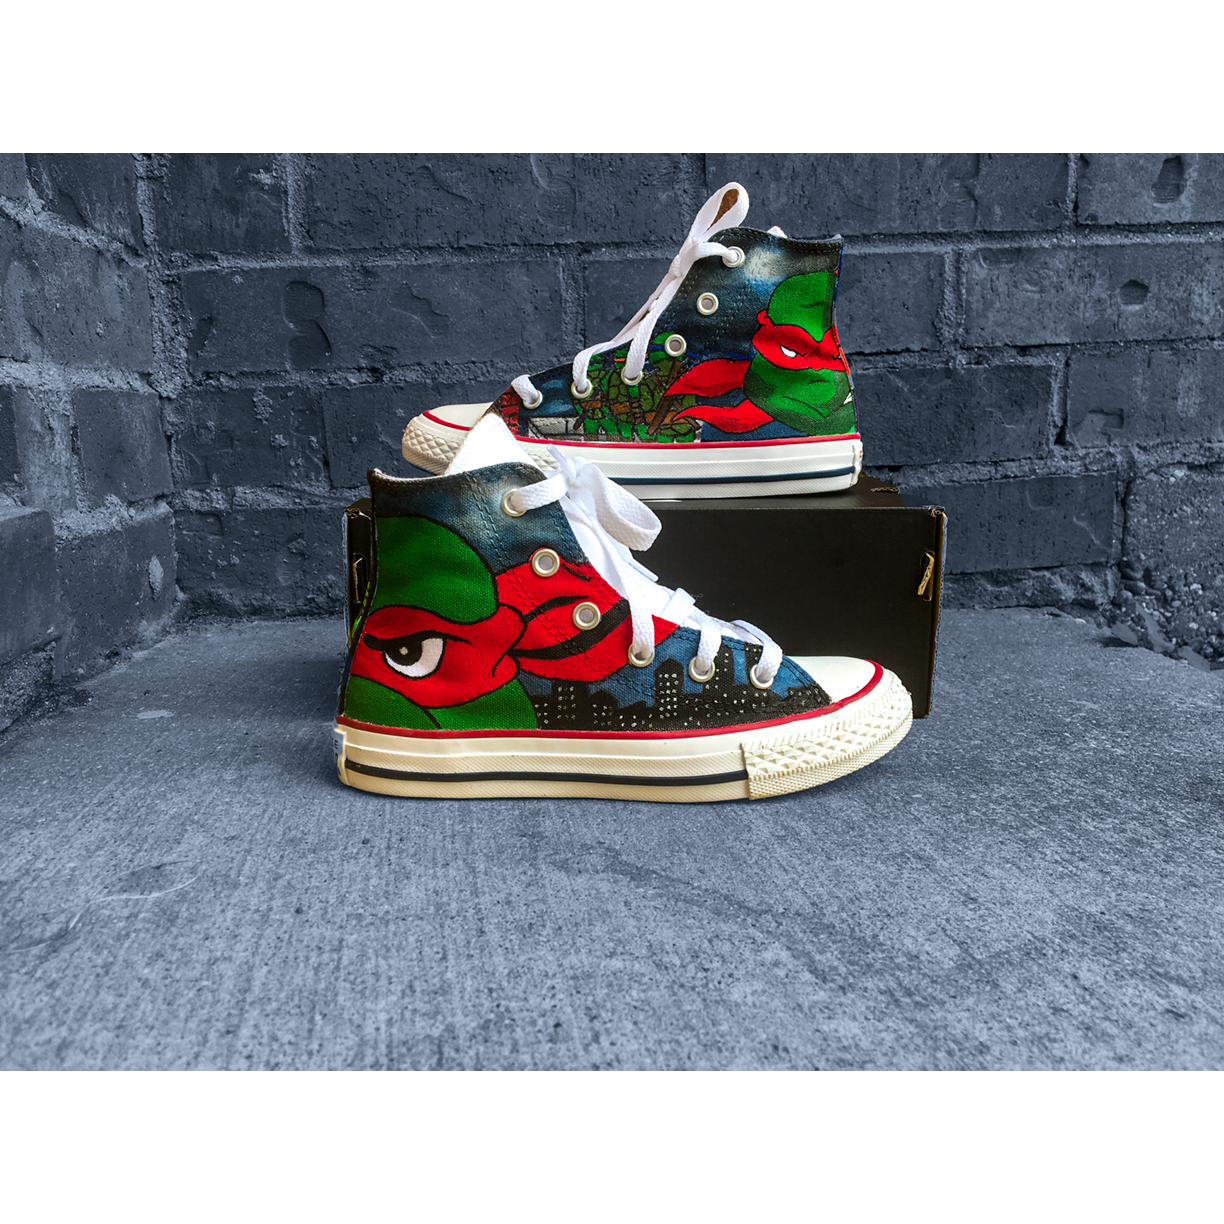 Teenage Mutant Ninja Turtle Chucks